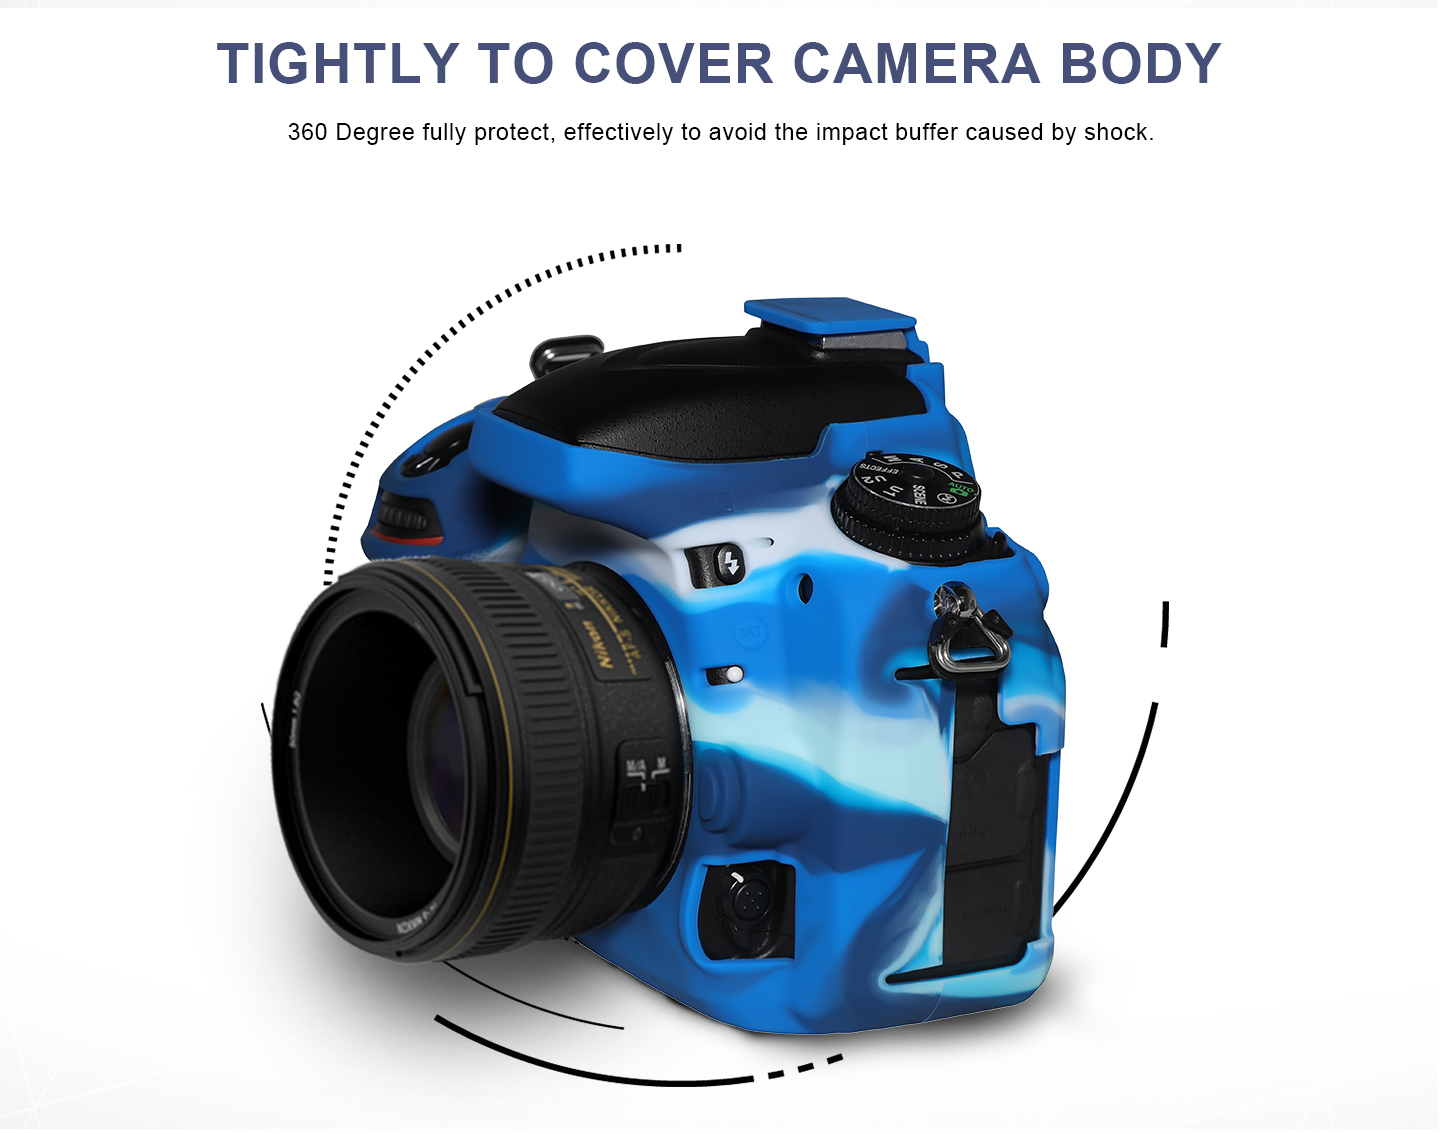 TIGHTLY TO COVER CAMERA BODY